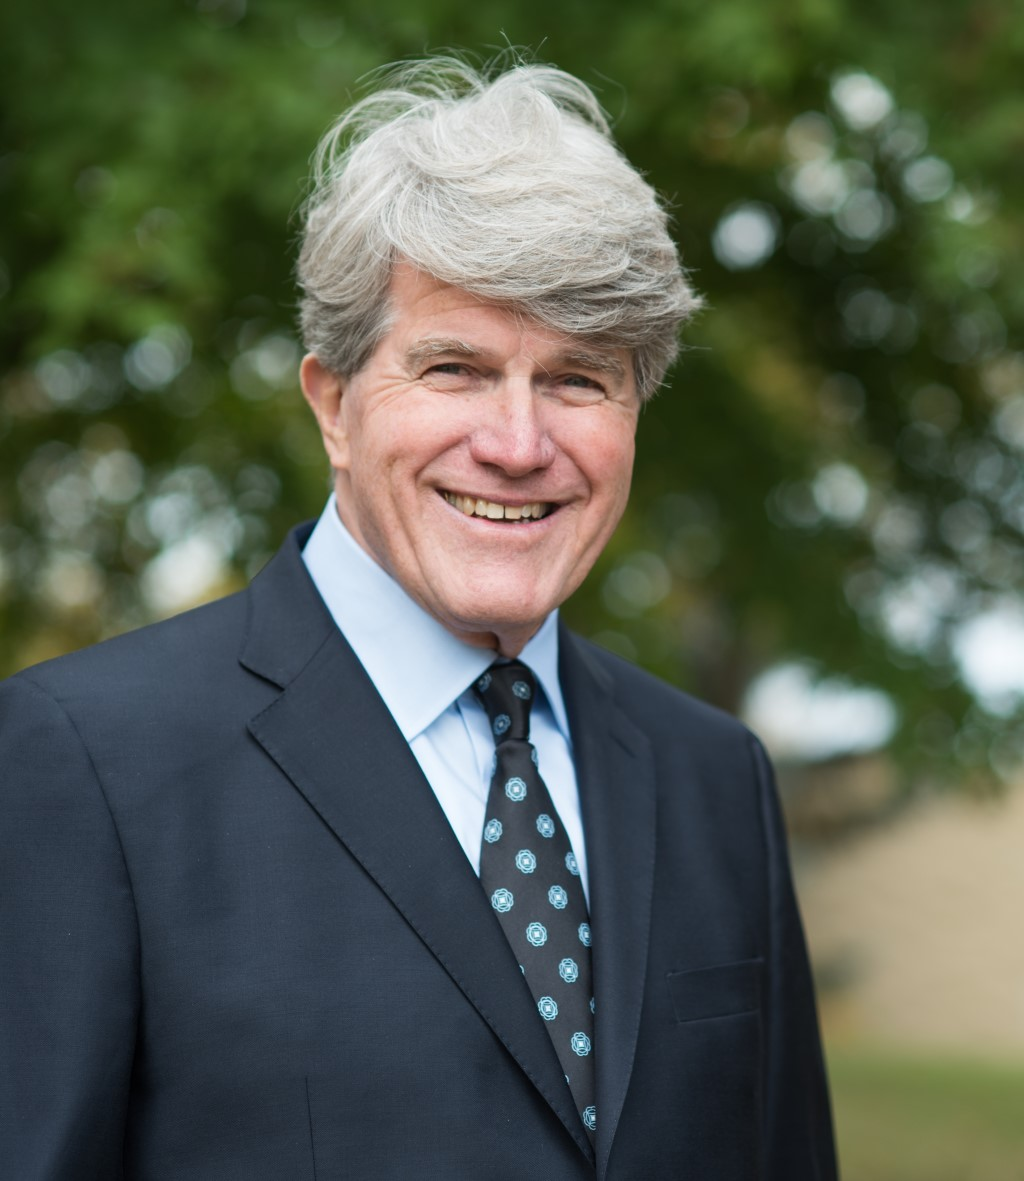 Matt Flynn Will Make Childcare a Budget Priority as Governor